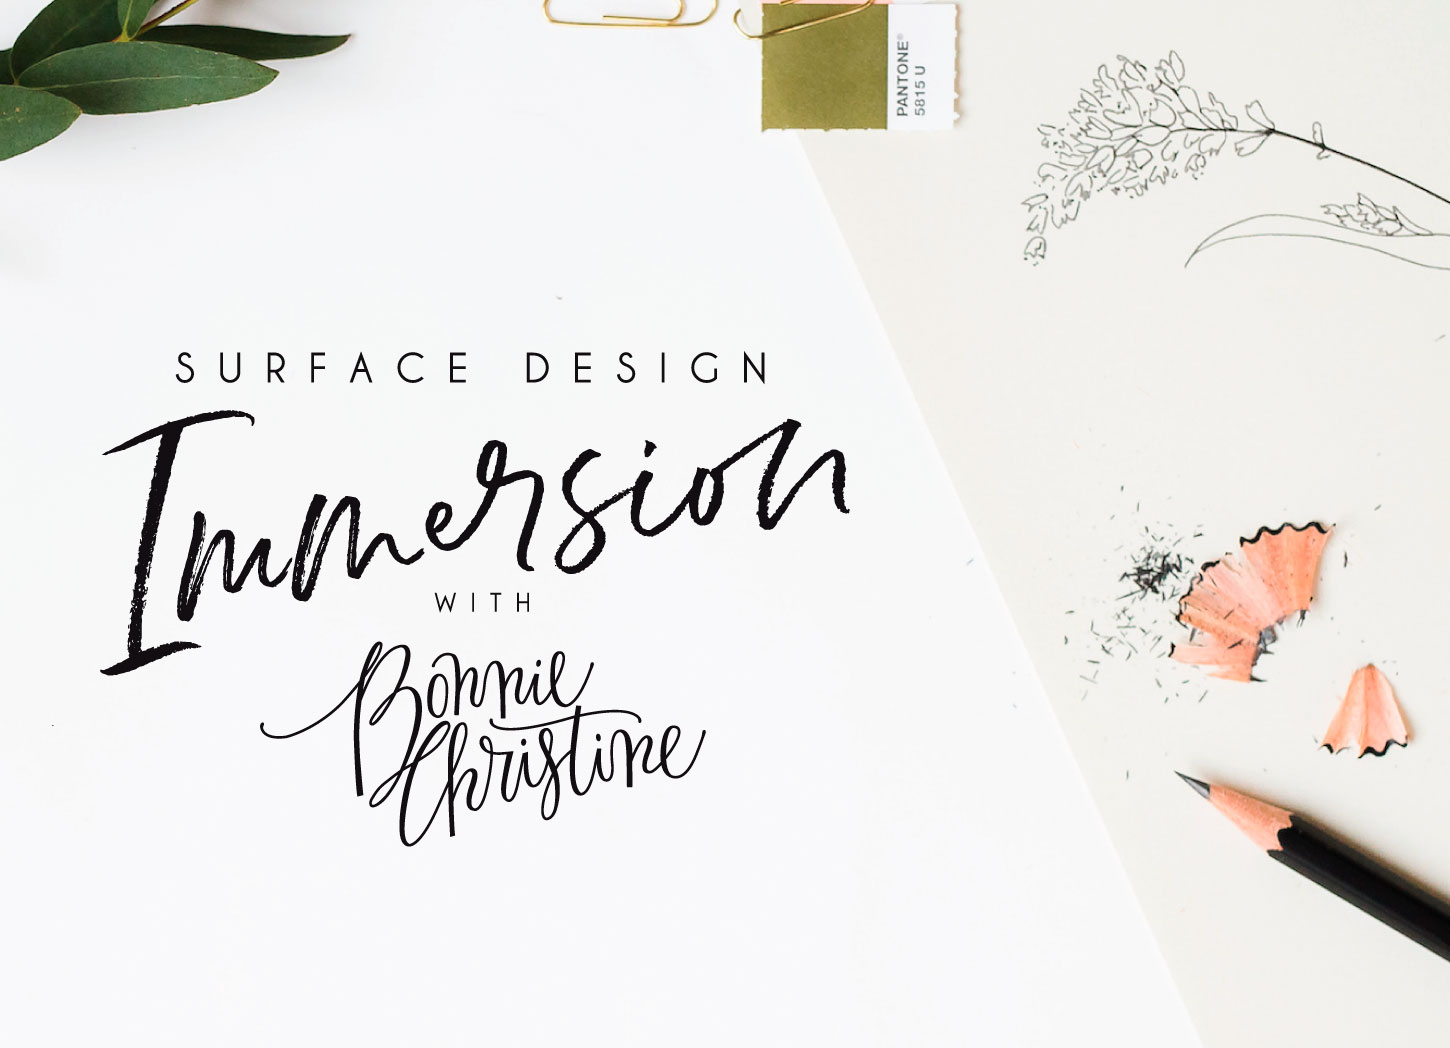 Surface Design Immersion with Bonnie Christine